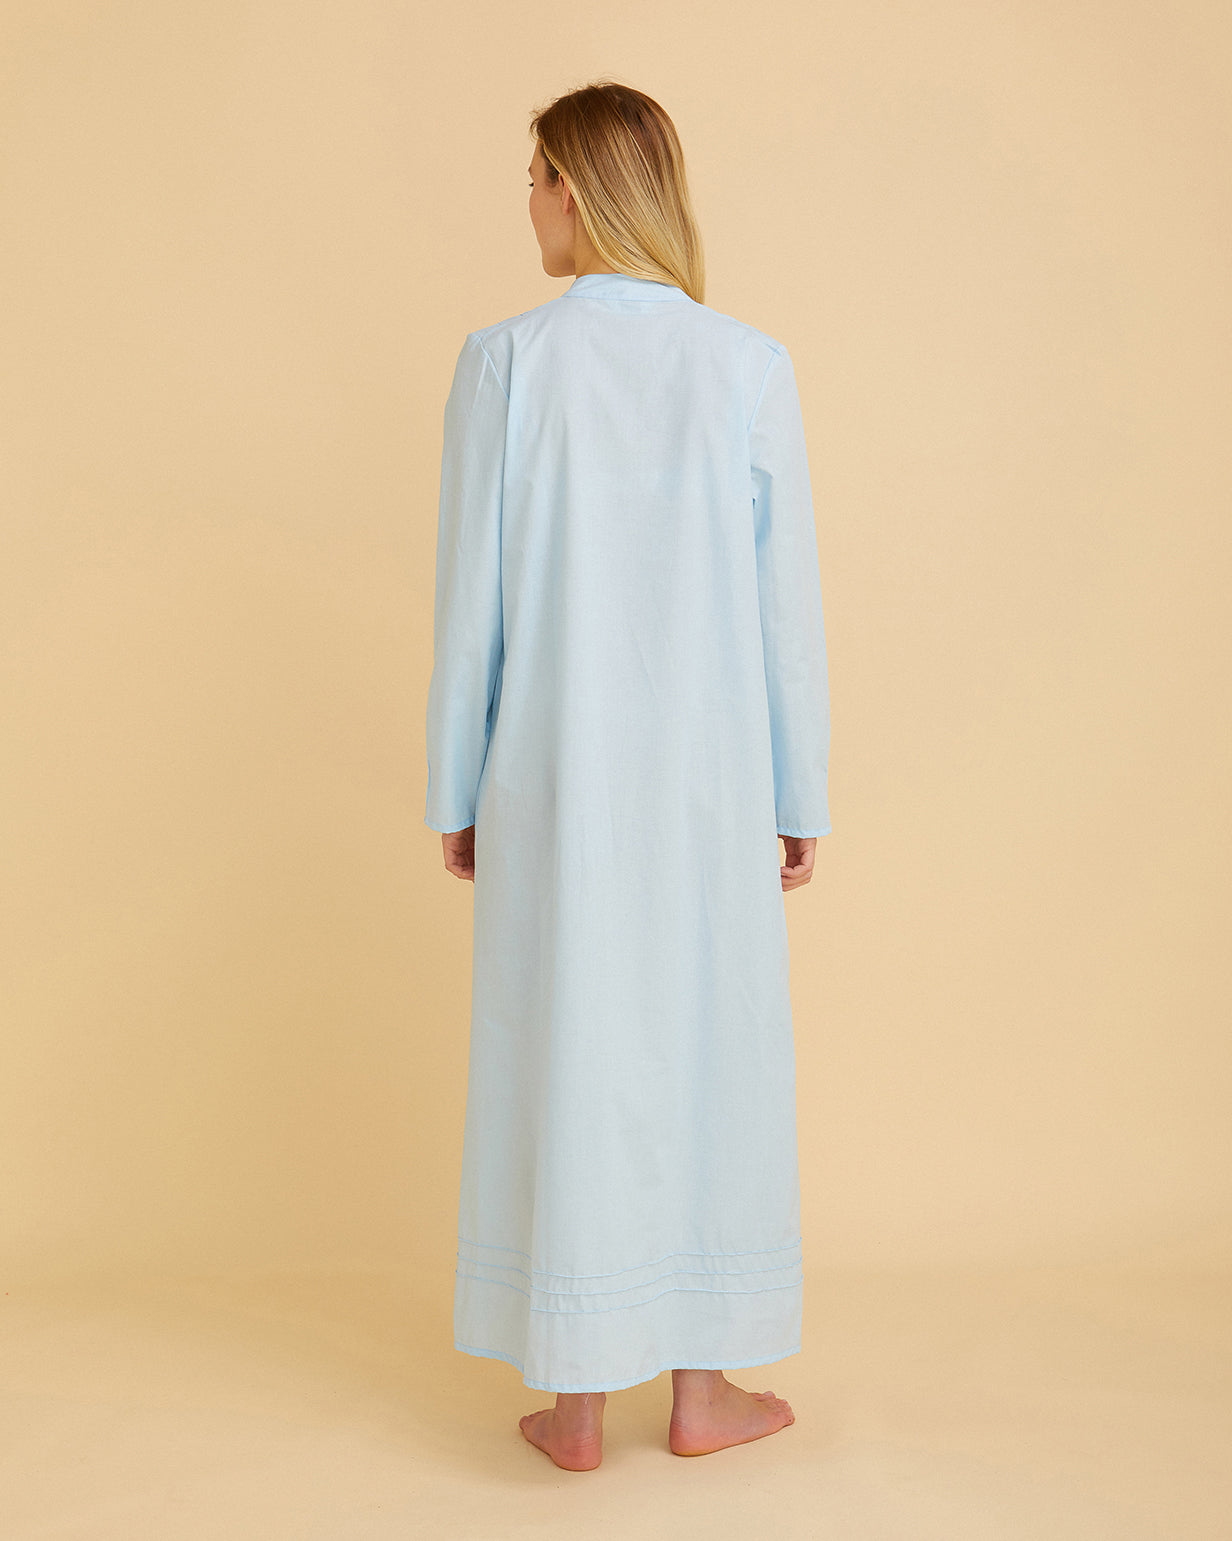 Women's Victoria Long Sleeve Cotton Nightdress – Blue | Bonsoir of London